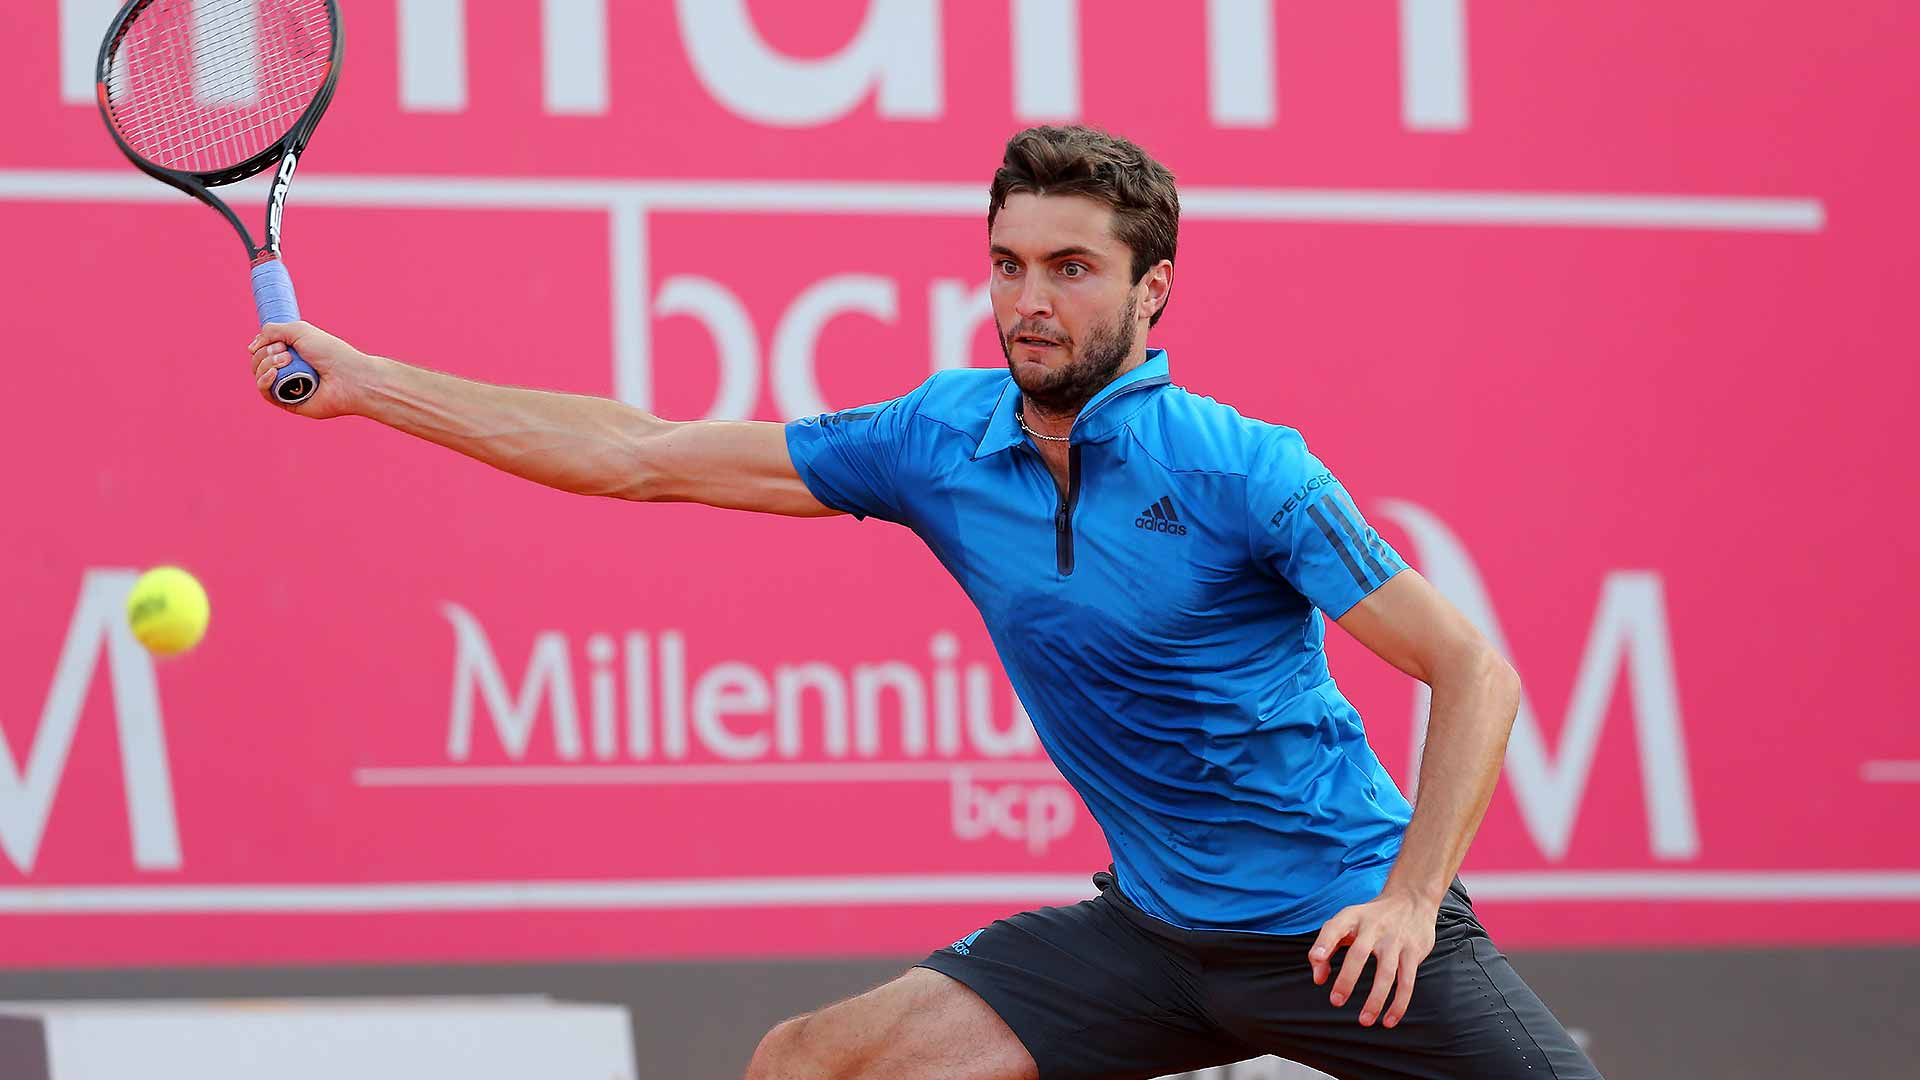 Gilles Simon rallies against Paul-Henri Mathieu to reach the Estoril quarter-finals.